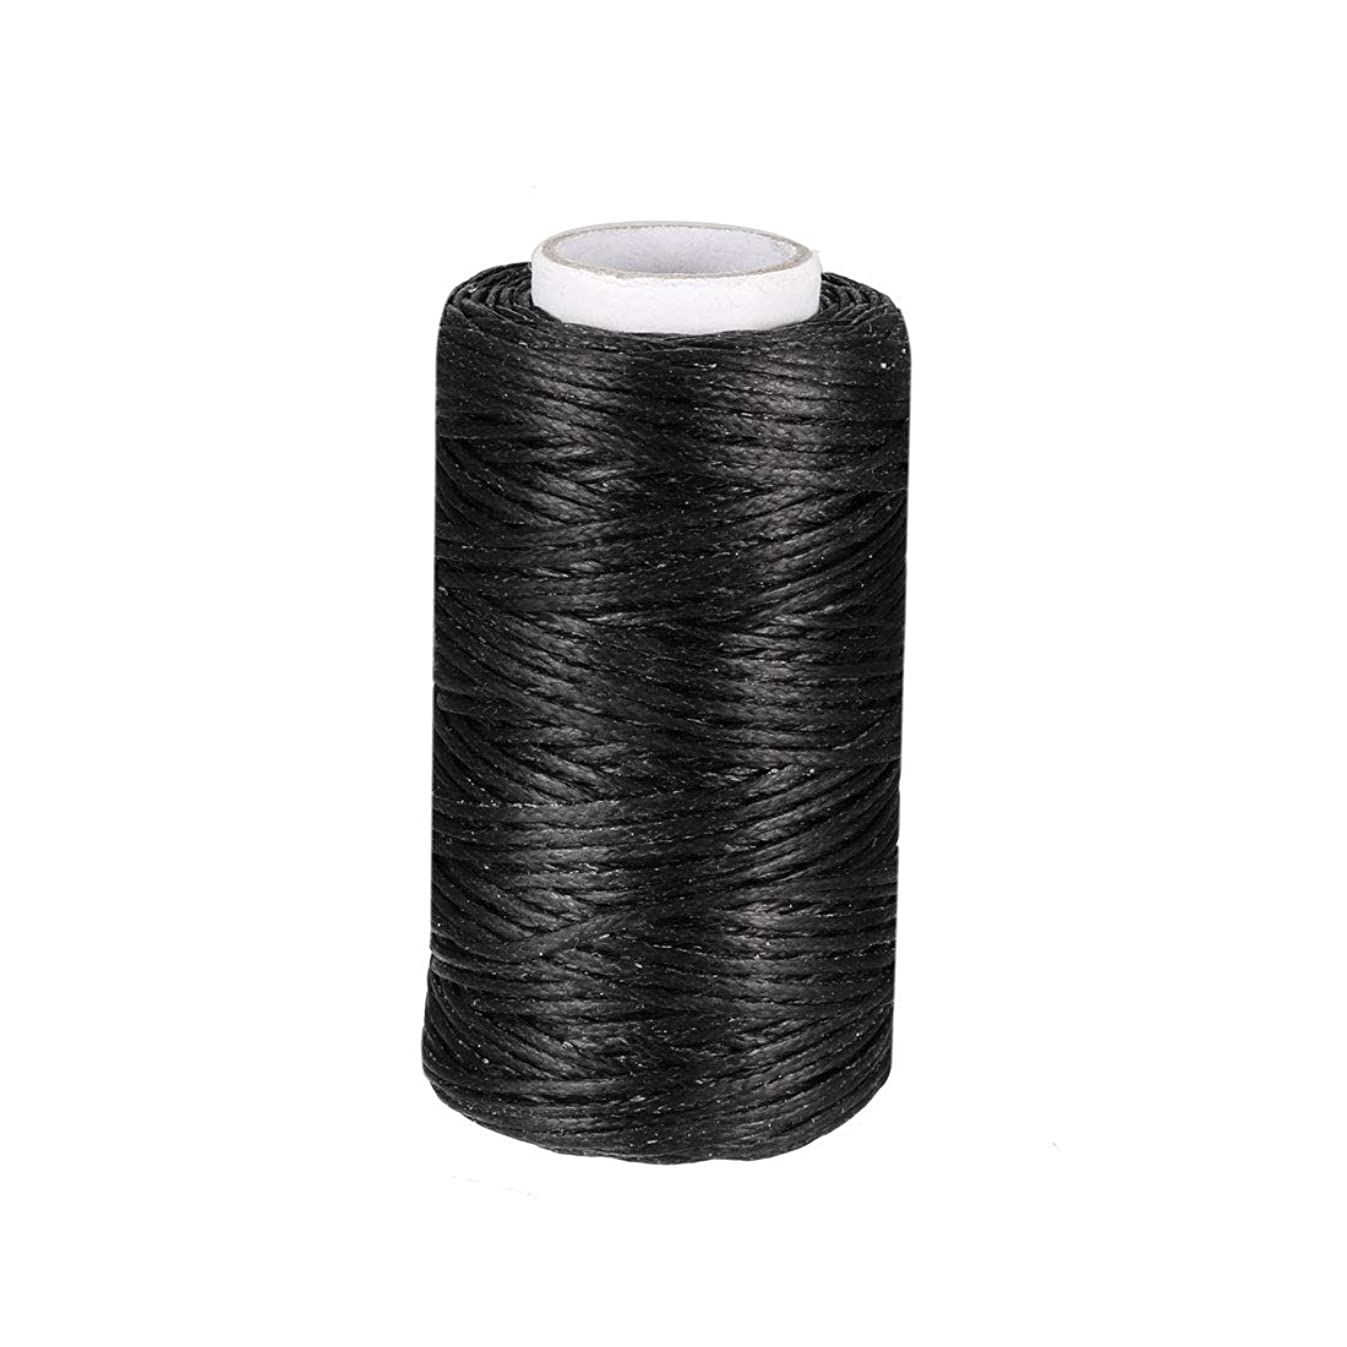 uxcell Crafts 150D 1mm Leather Sewing Stitching Flat Waxed Thread String Cord (150D 1mm 50M, Black)